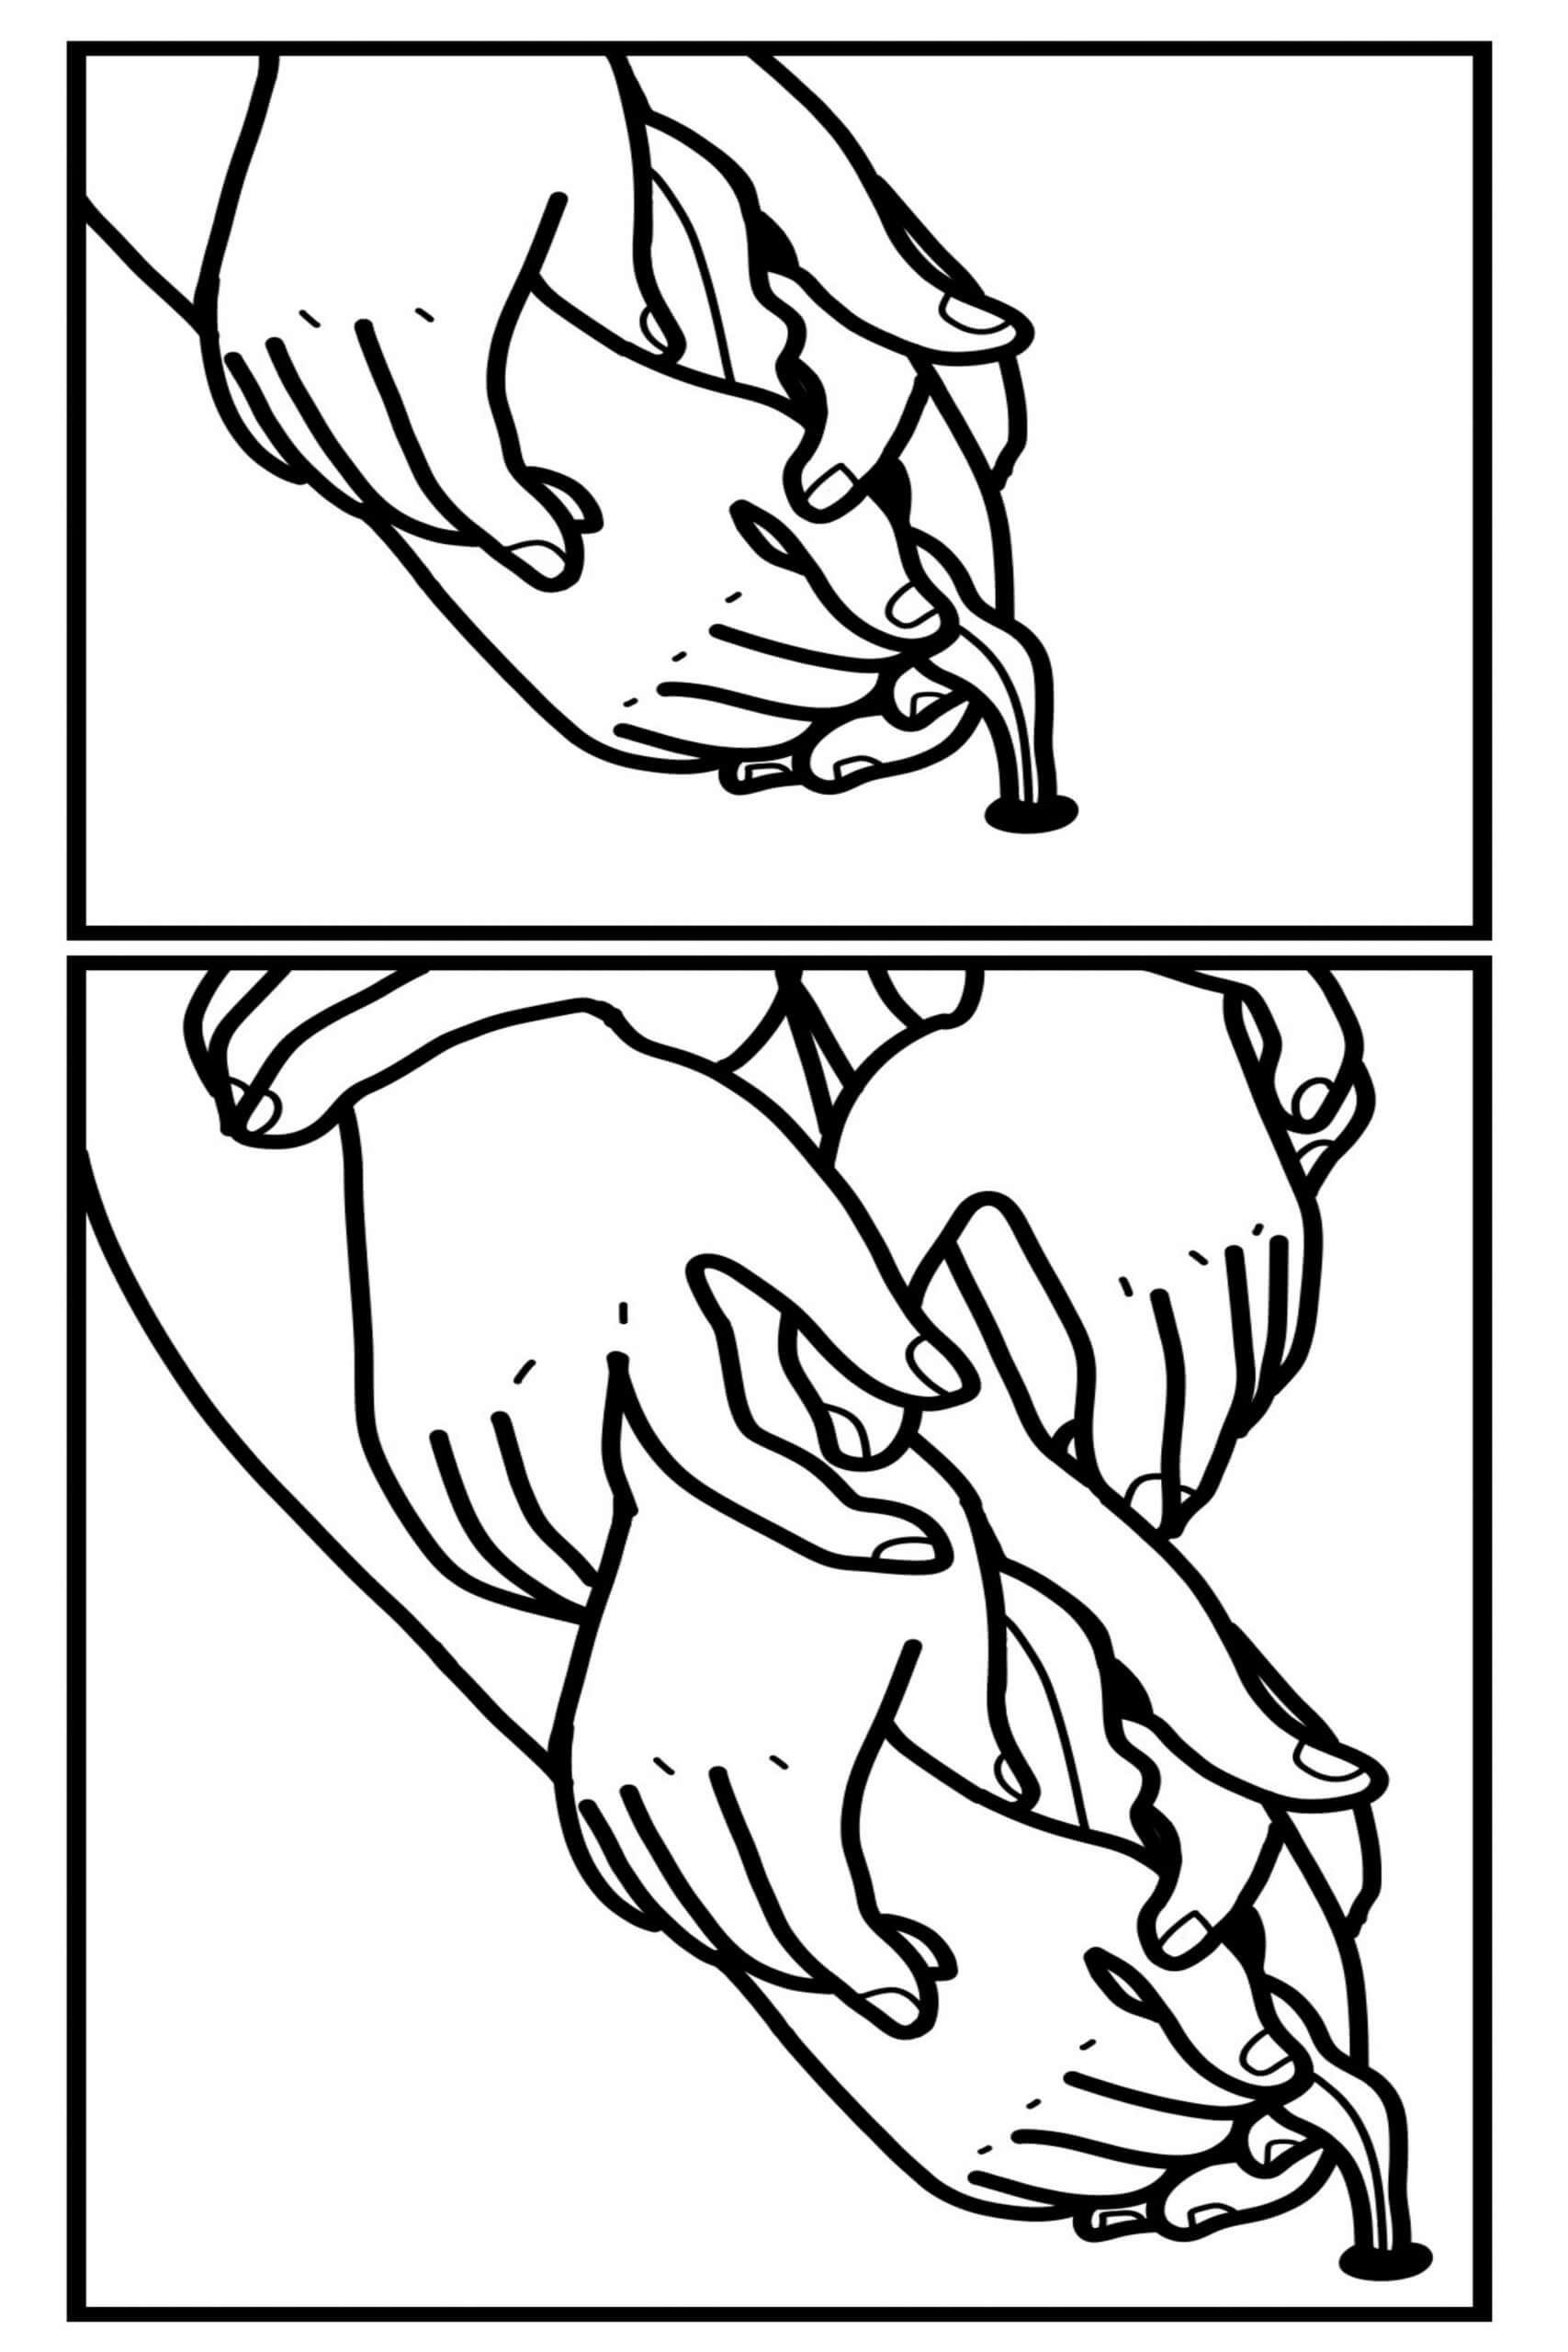 A two panel black and white illustration where both panels show multiple hands touching and massaging other hands in a cascade.